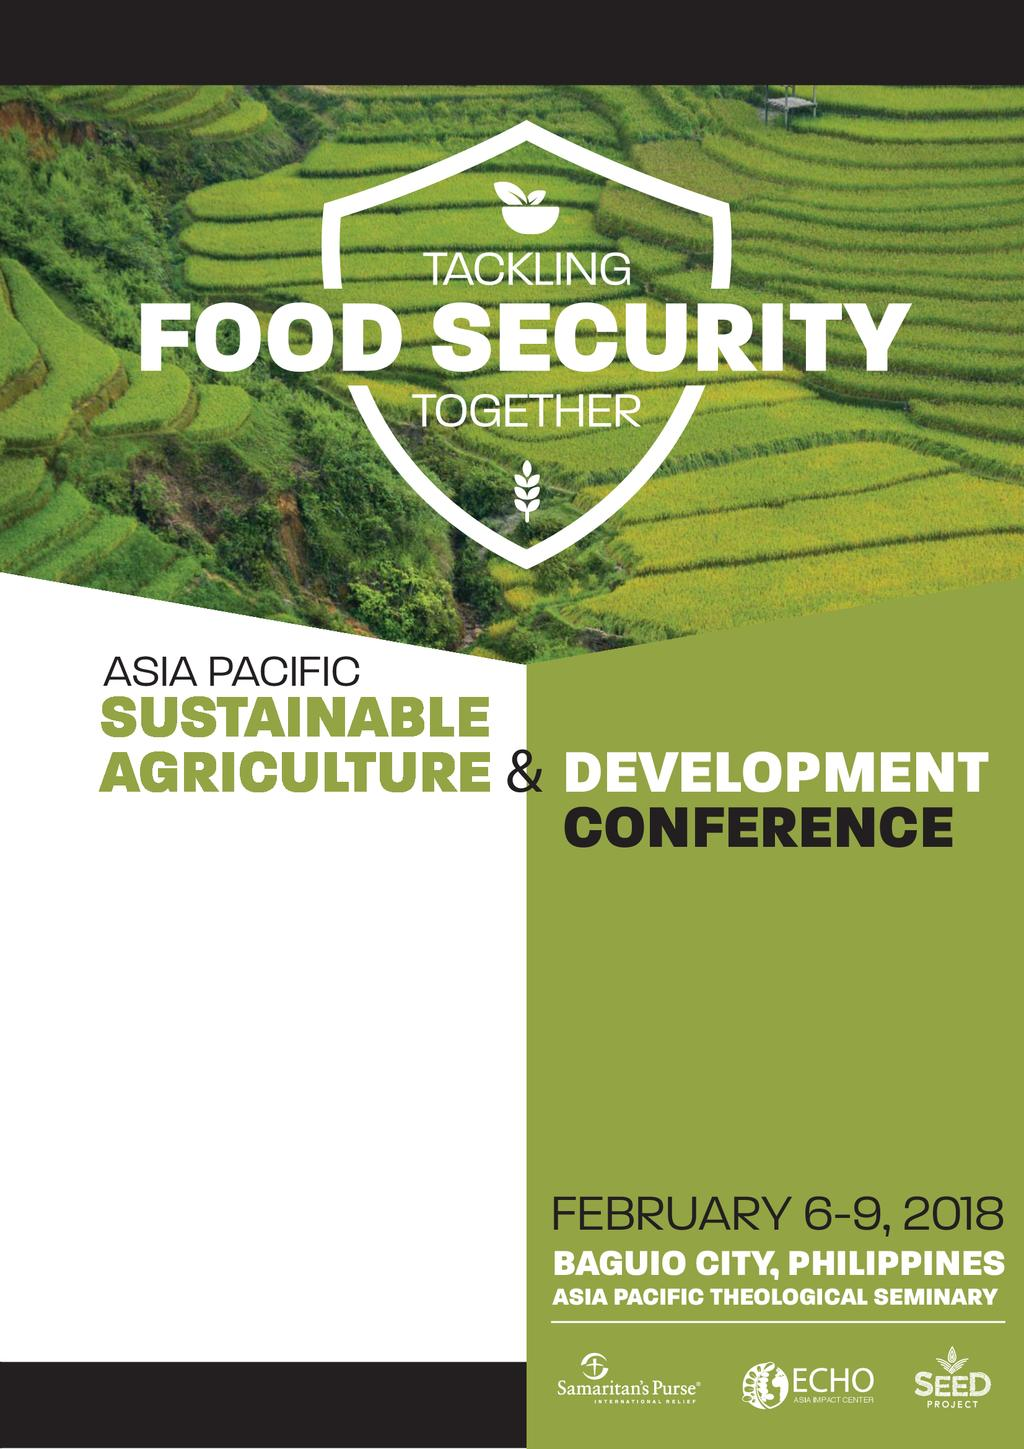 Asia Pacific Sustainable Agriculture & Development Conference booklet